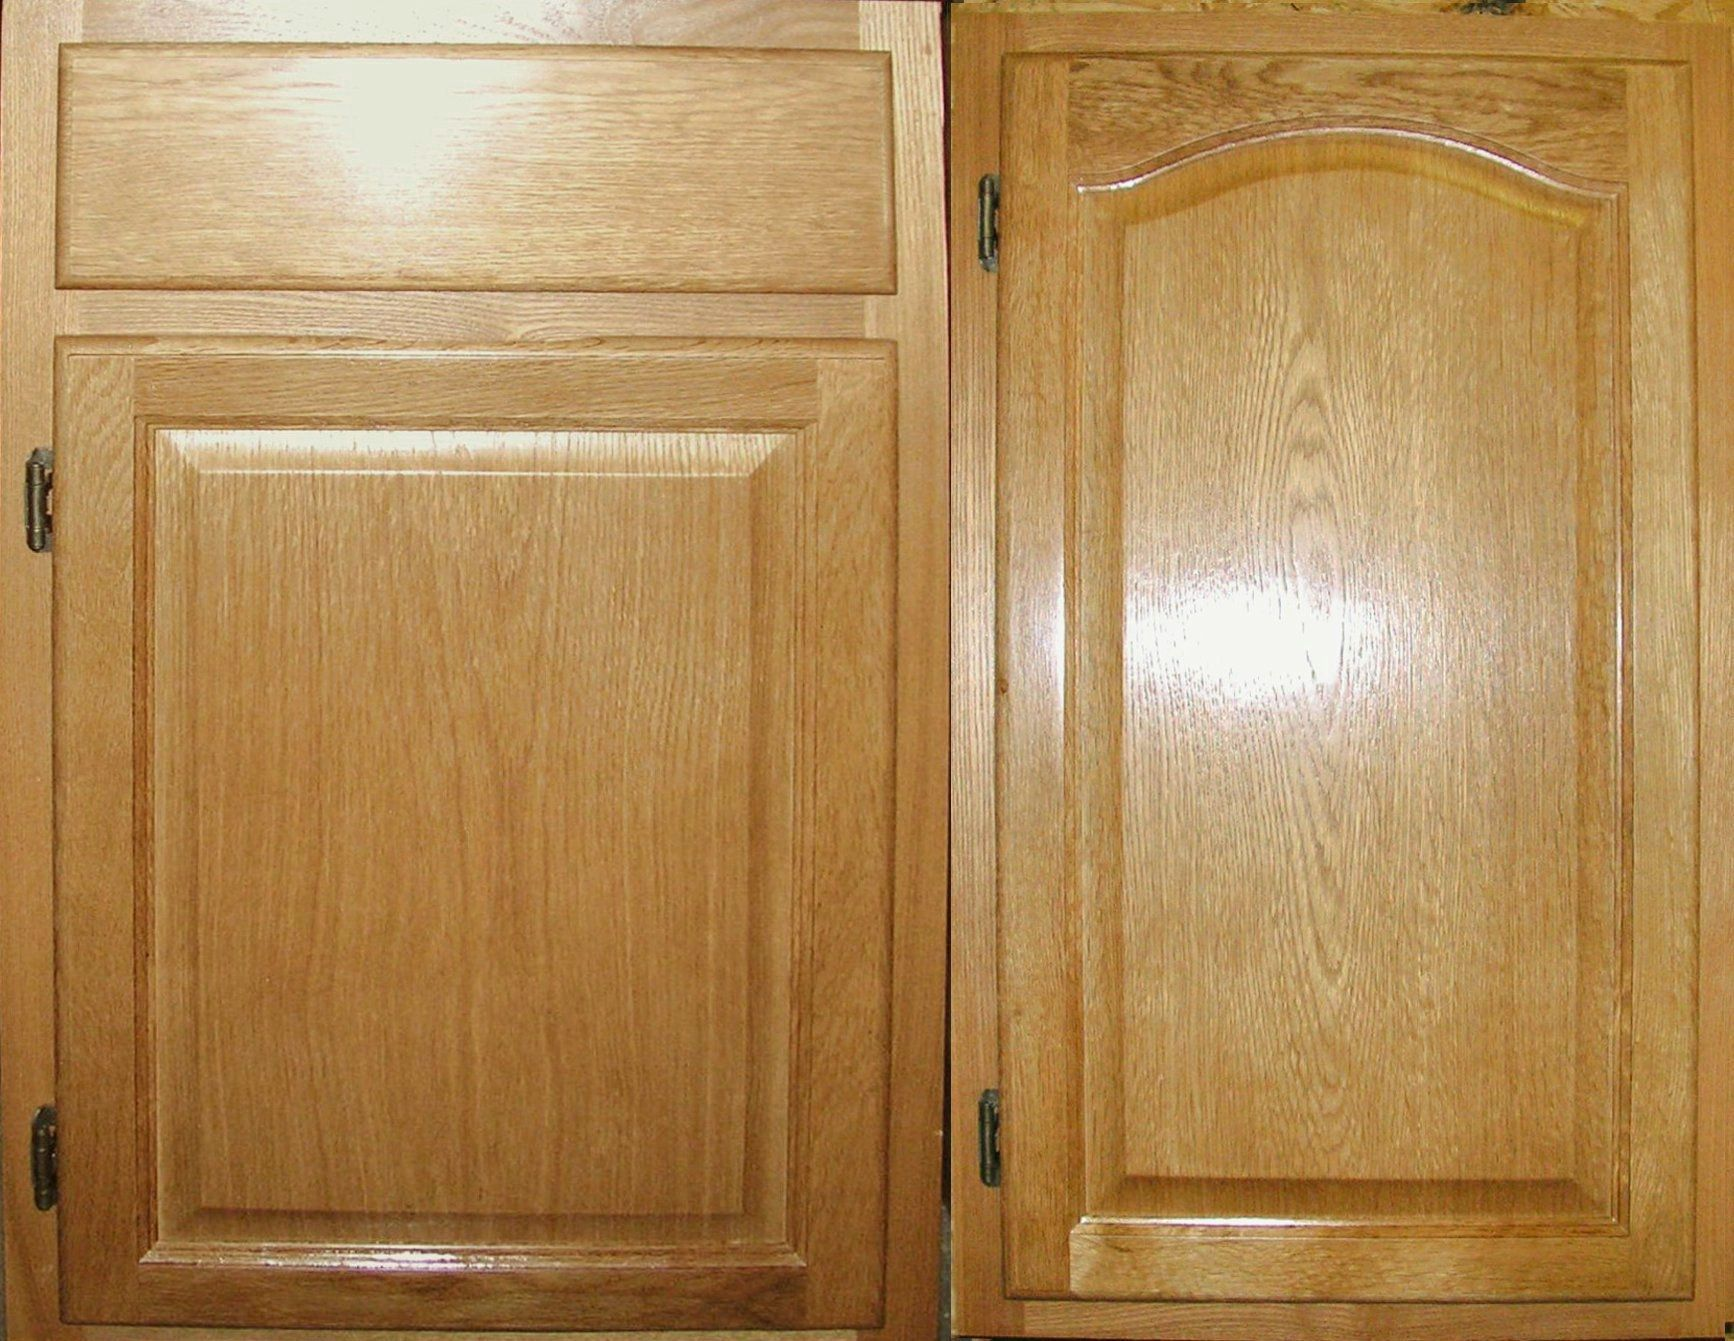 Best Kitchen Gallery: Arched Top Cabi Doors Advice Tips Pinterest of Kitchen Cabinet Doors Oak on cal-ite.com